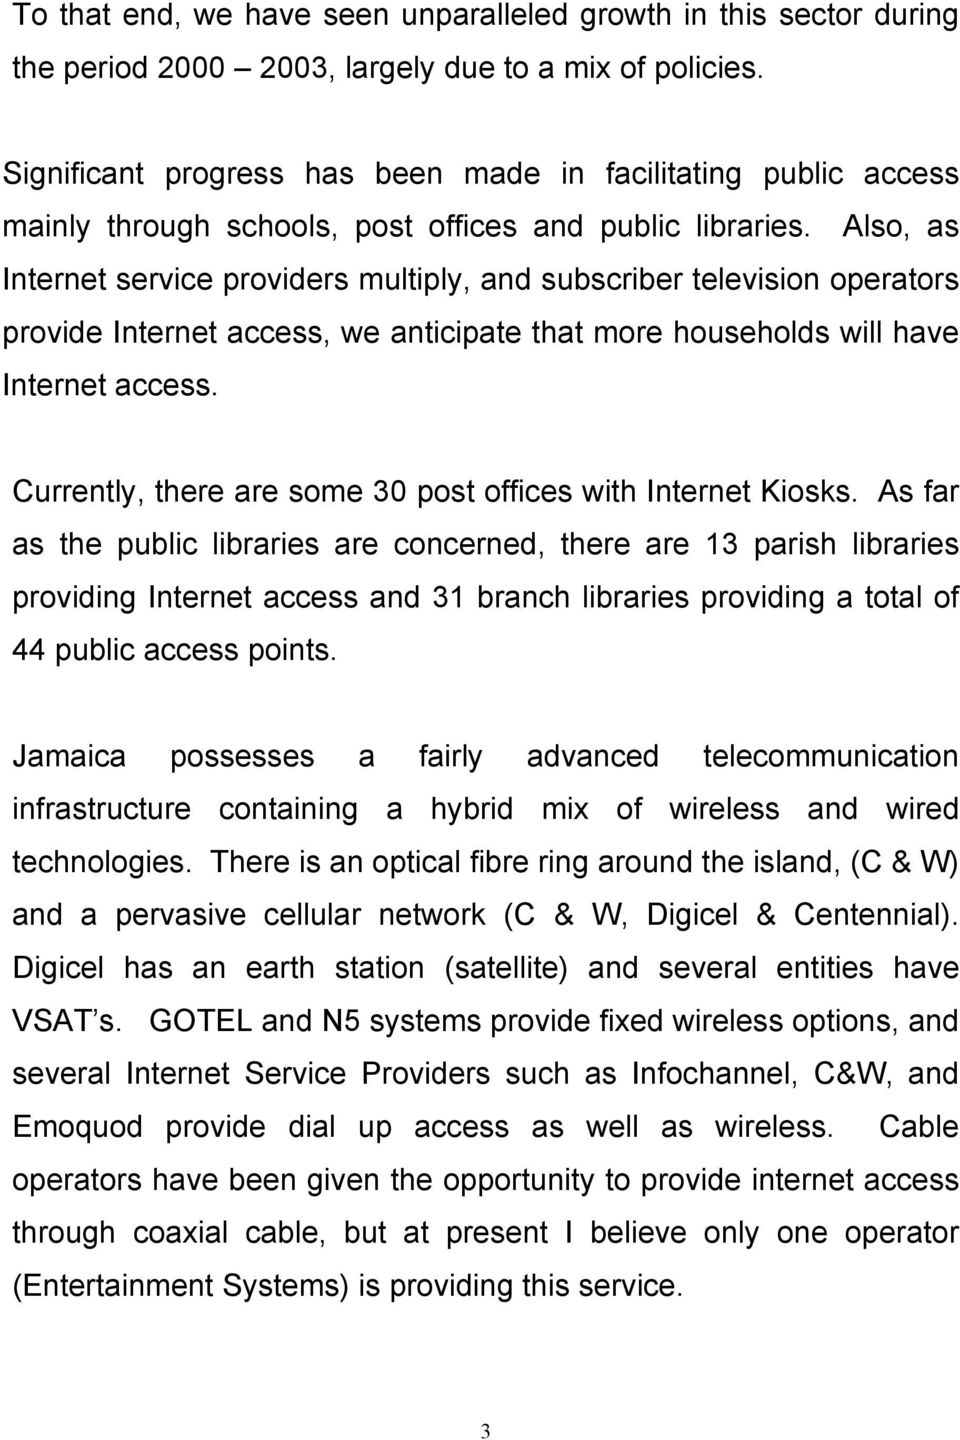 Also, as Internet service providers multiply, and subscriber television operators provide Internet access, we anticipate that more households will have Internet access.